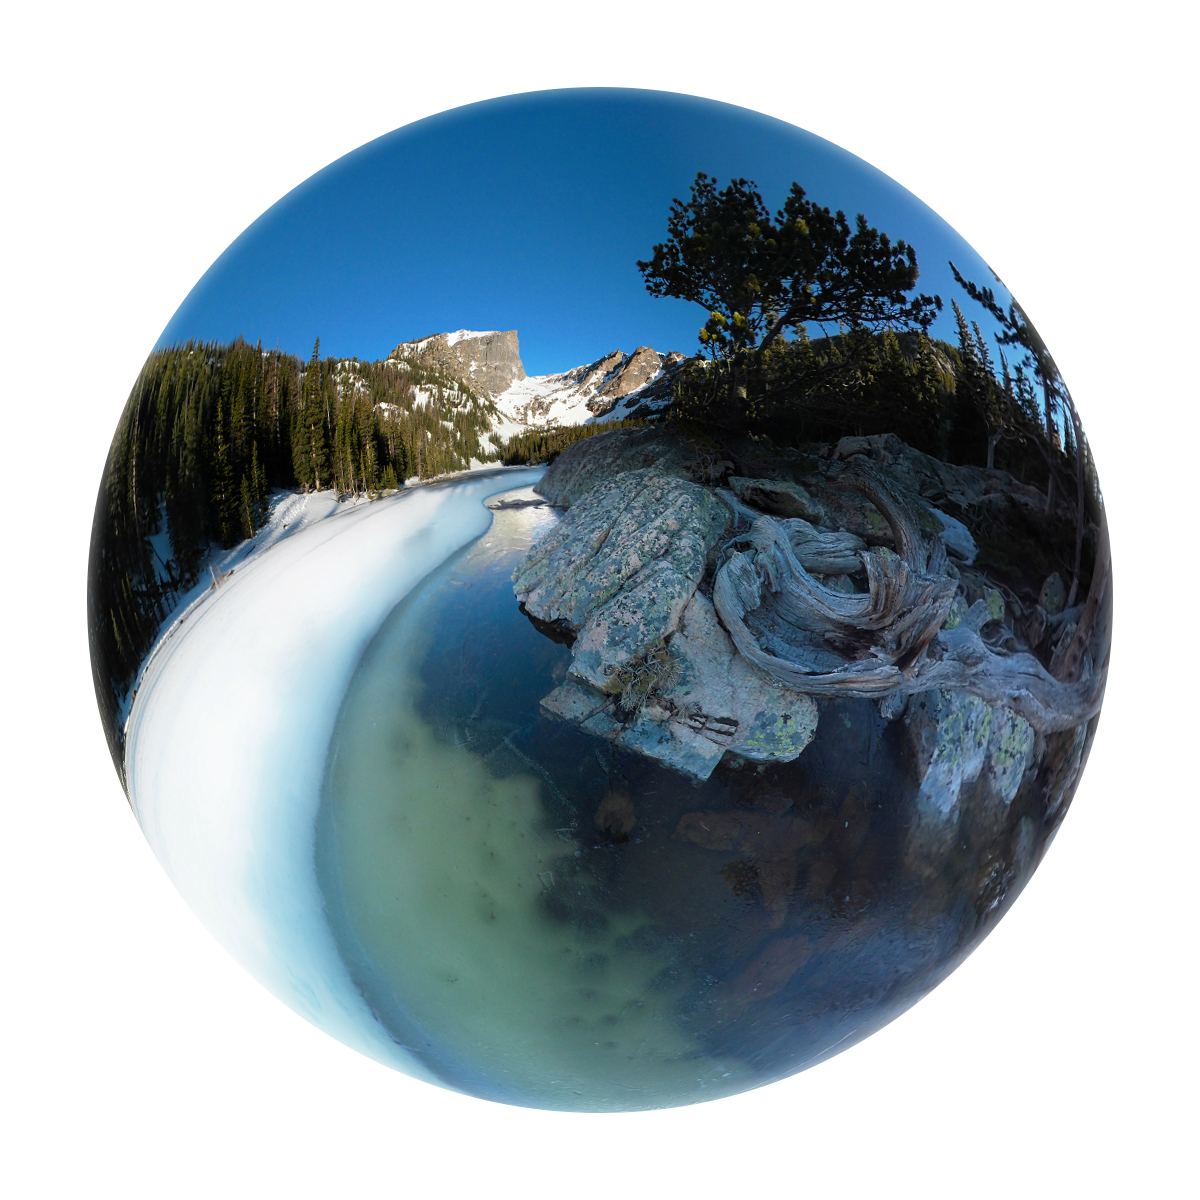 Dream_Lake_Globe_2.jpg